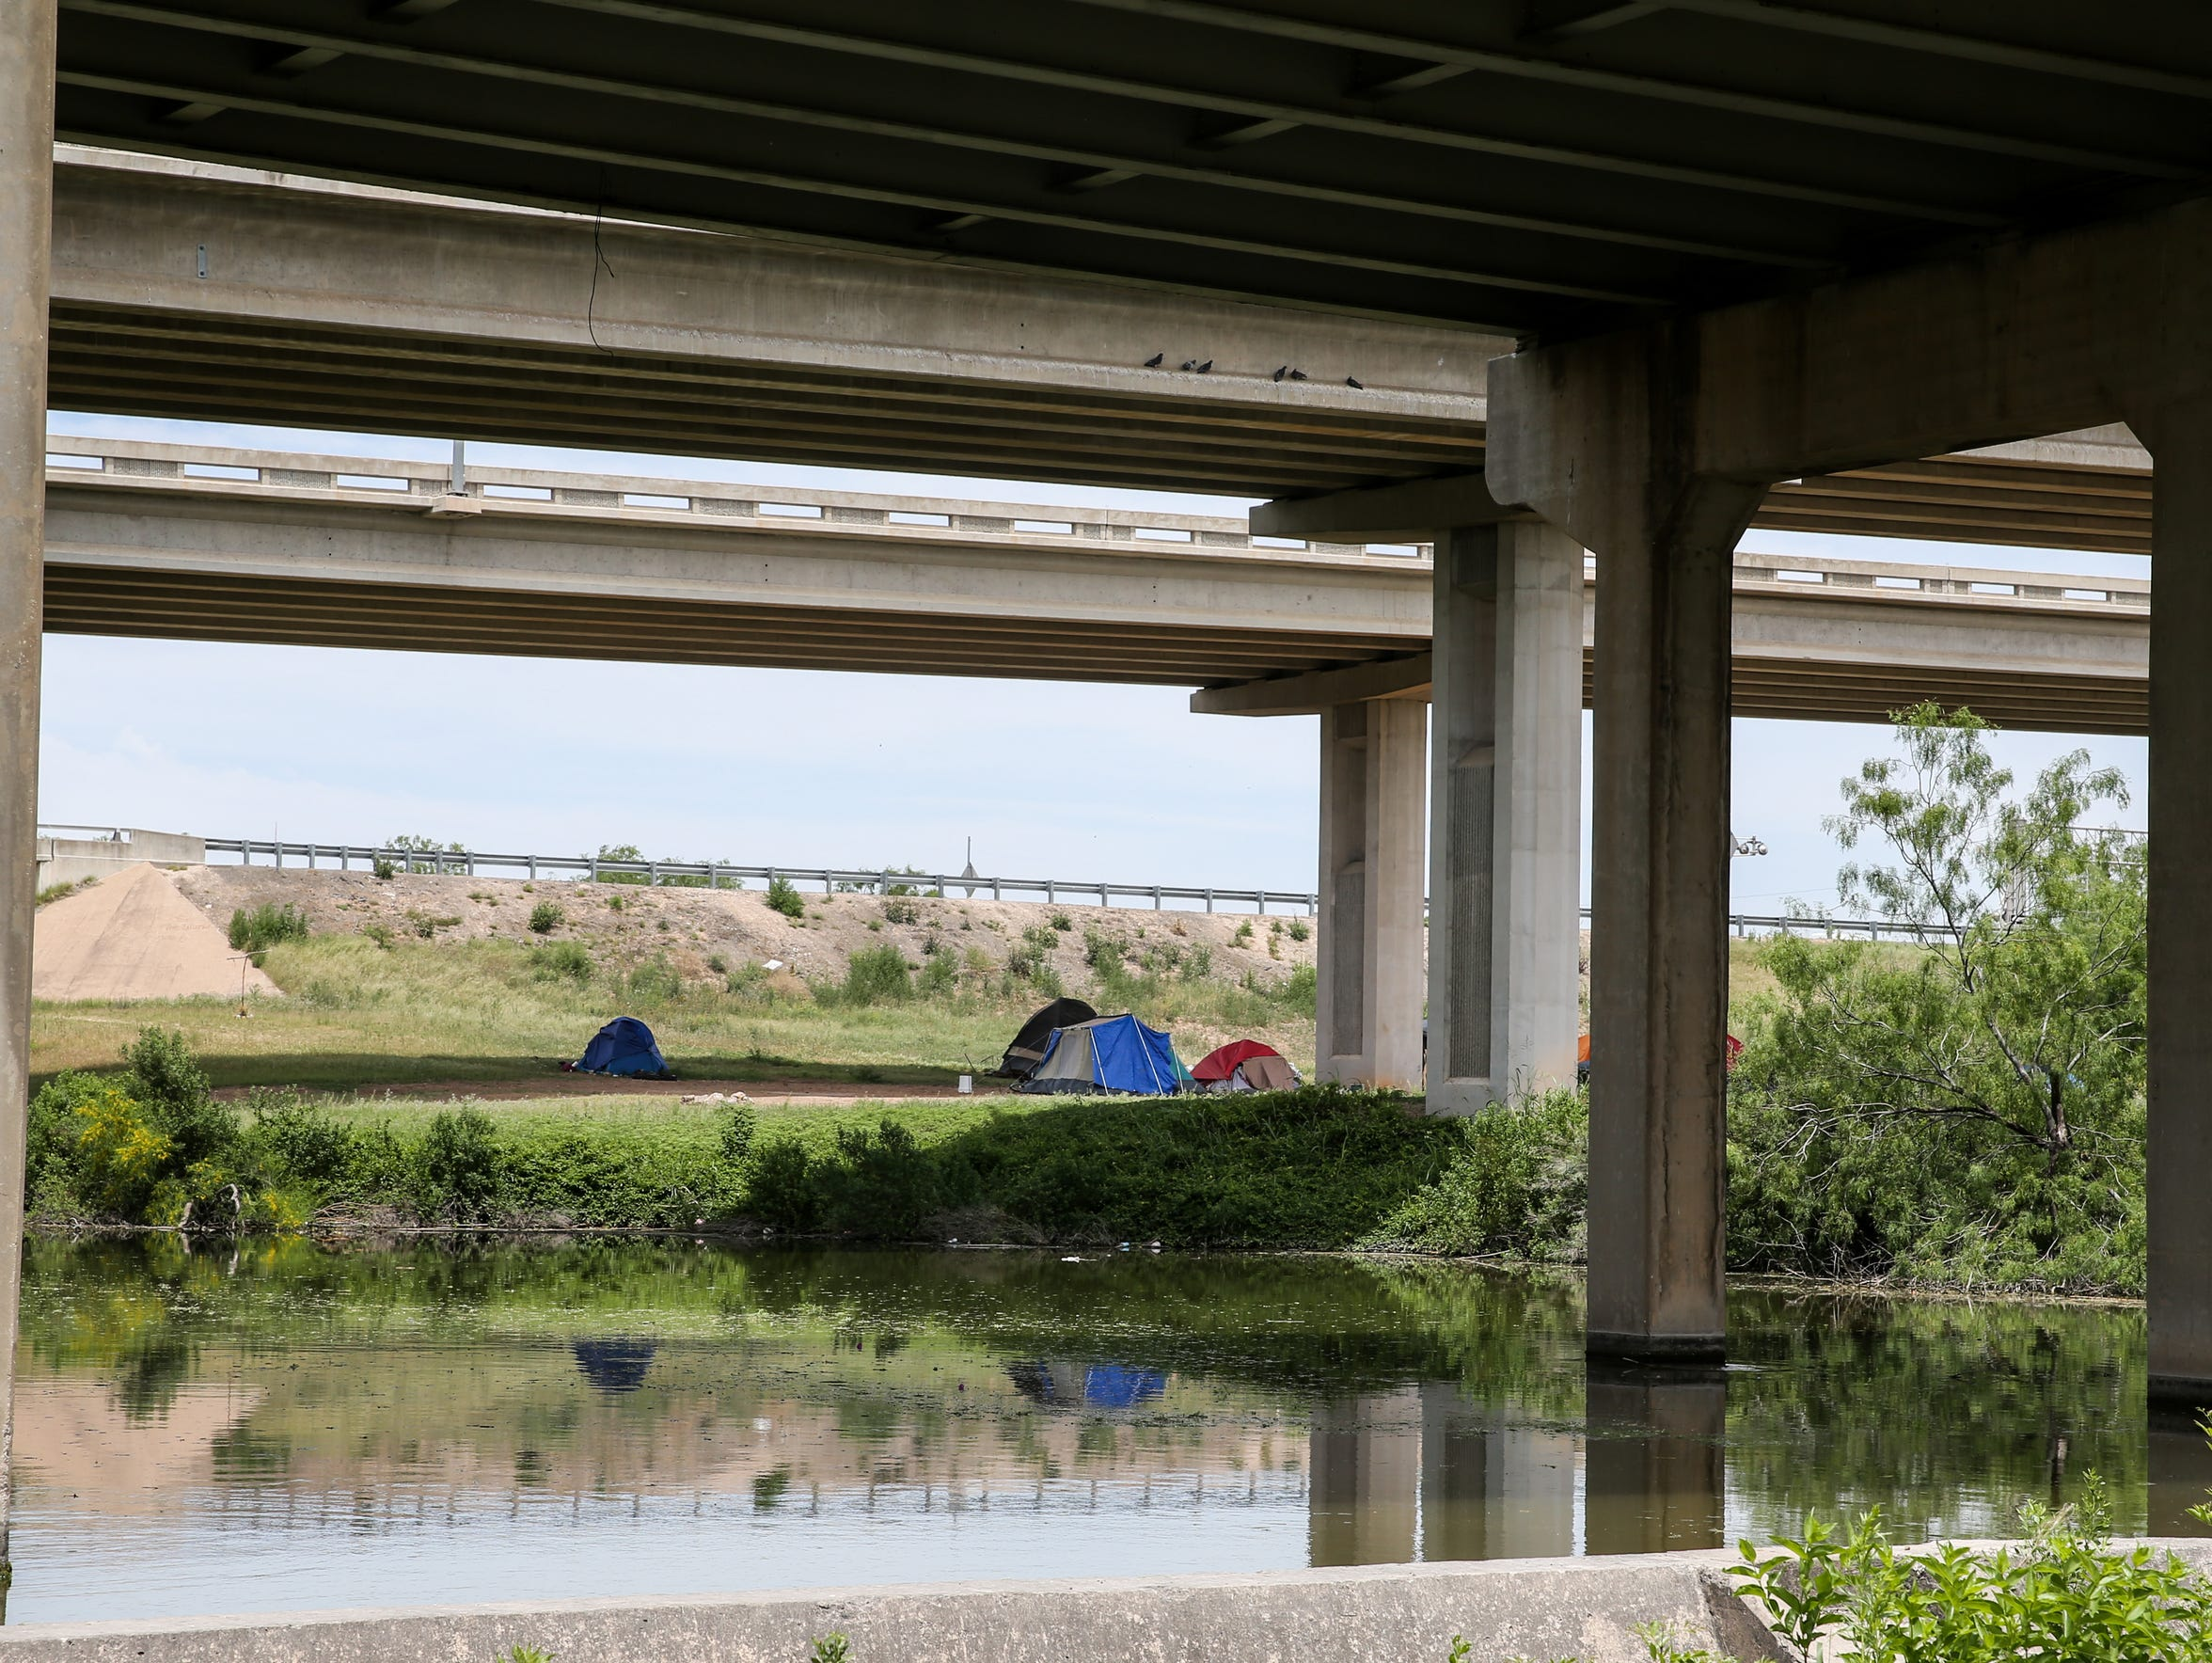 A tent city under the Houston Harte Expressway in San